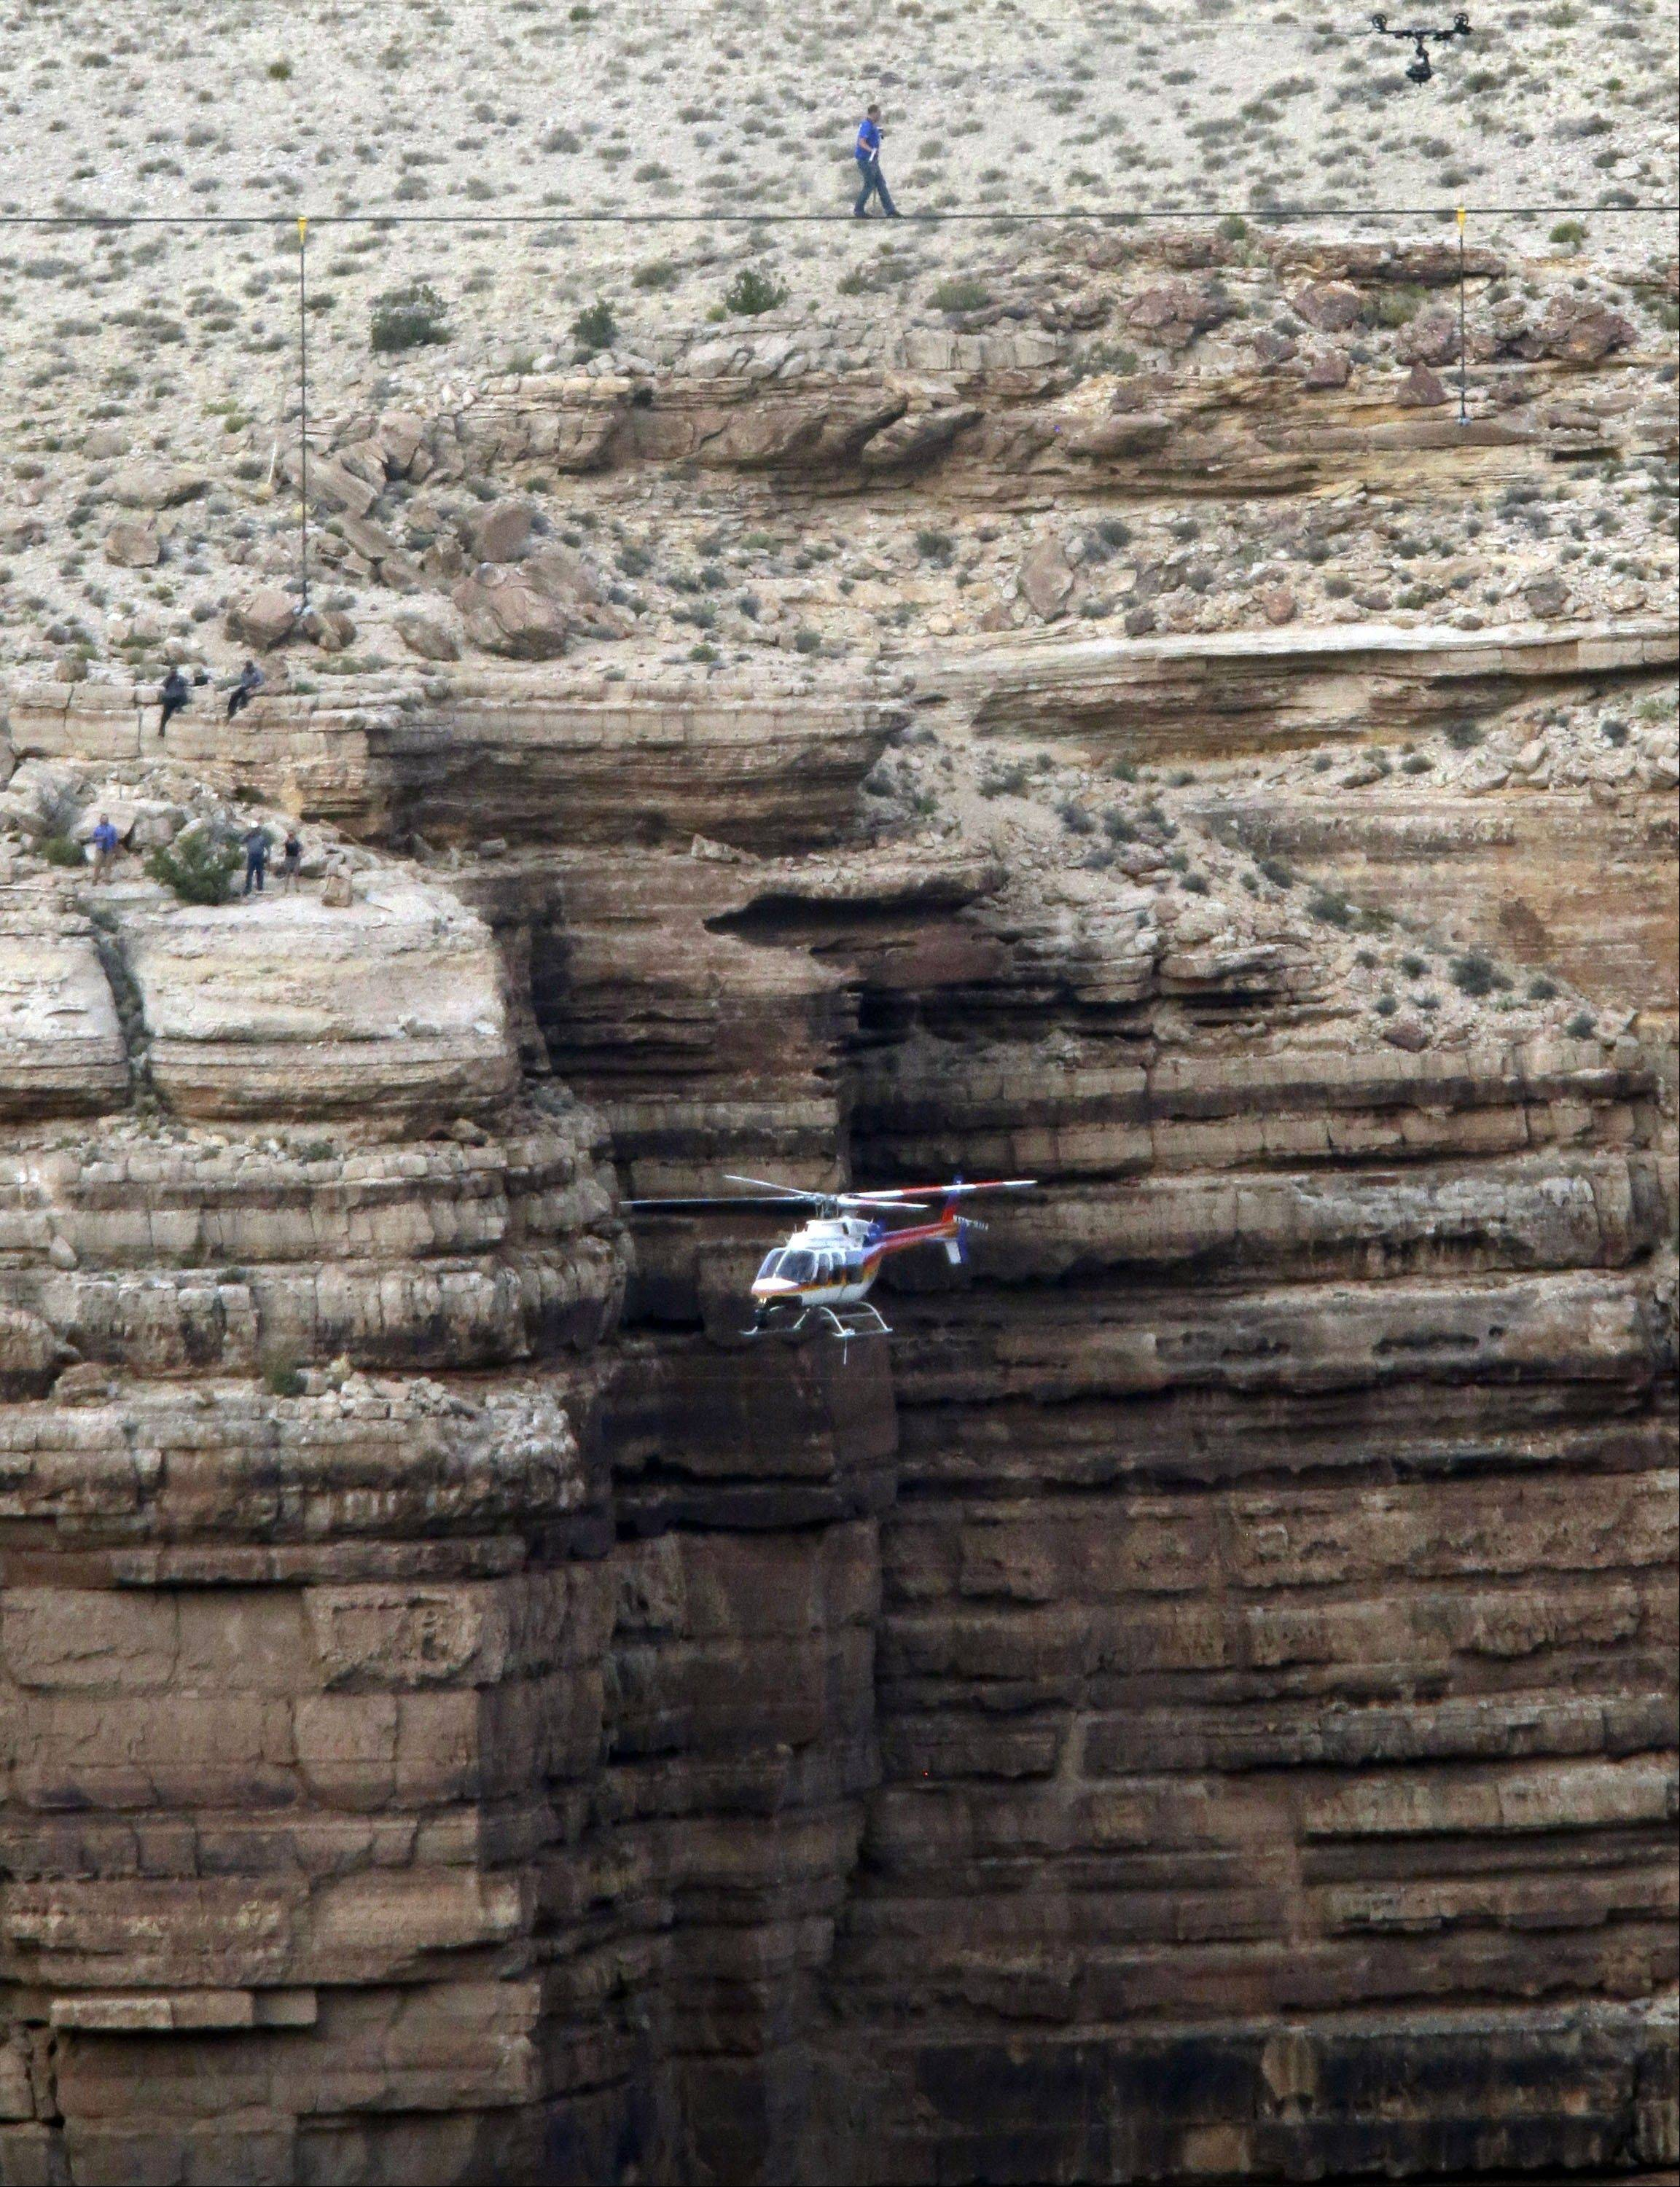 Daredevil Nik Wallenda crosses a tightrope 1,500 feet above the Little Colorado River Gorge Sunday, June 23, 2013, on the Navajo reservation outside the boundaries of Grand Canyon National Park.